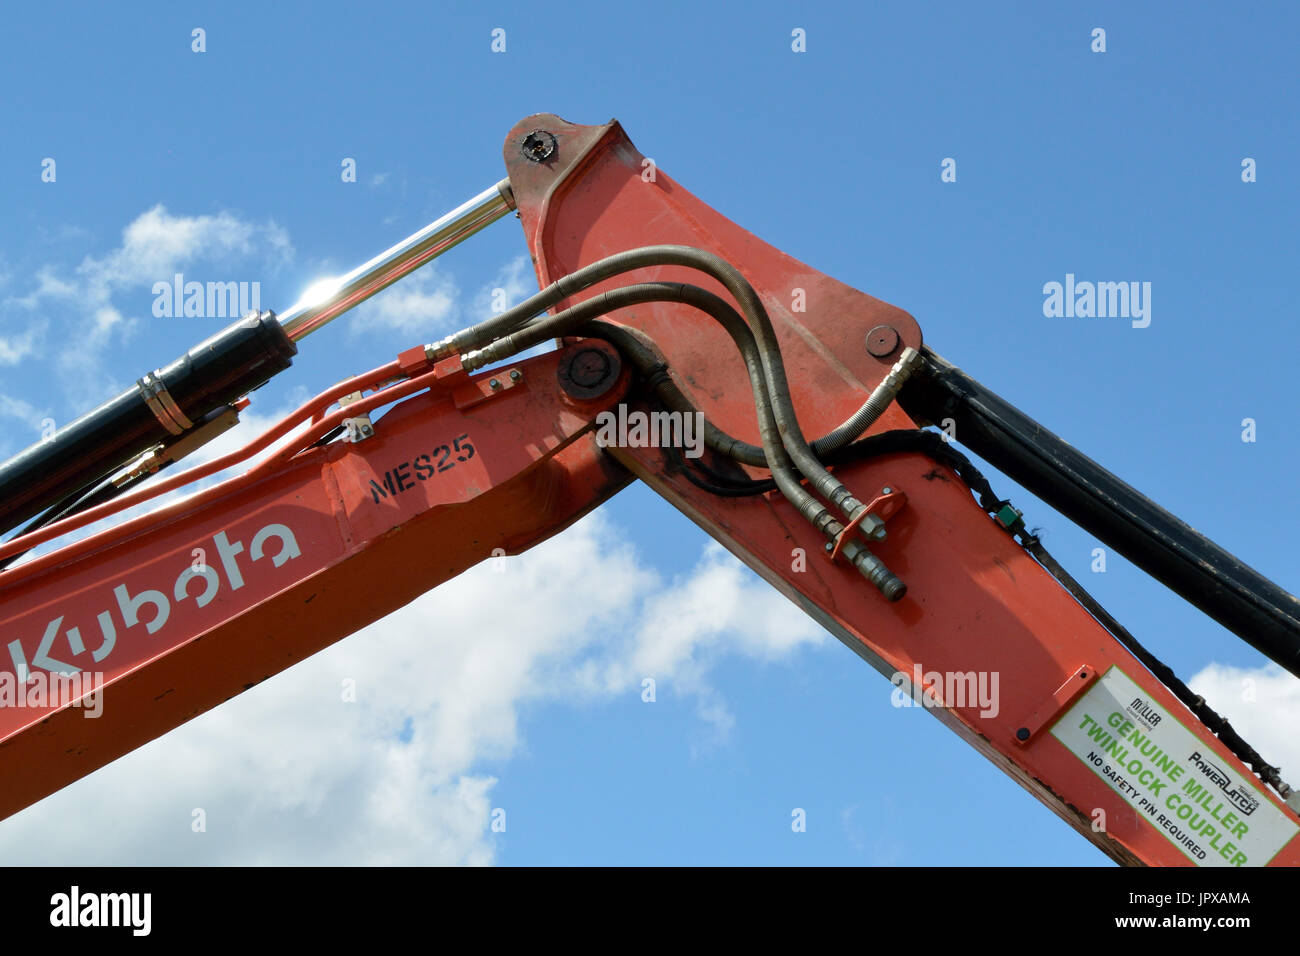 Excavator Hydraulic Arm Project : Hydraulic arm stock photos images